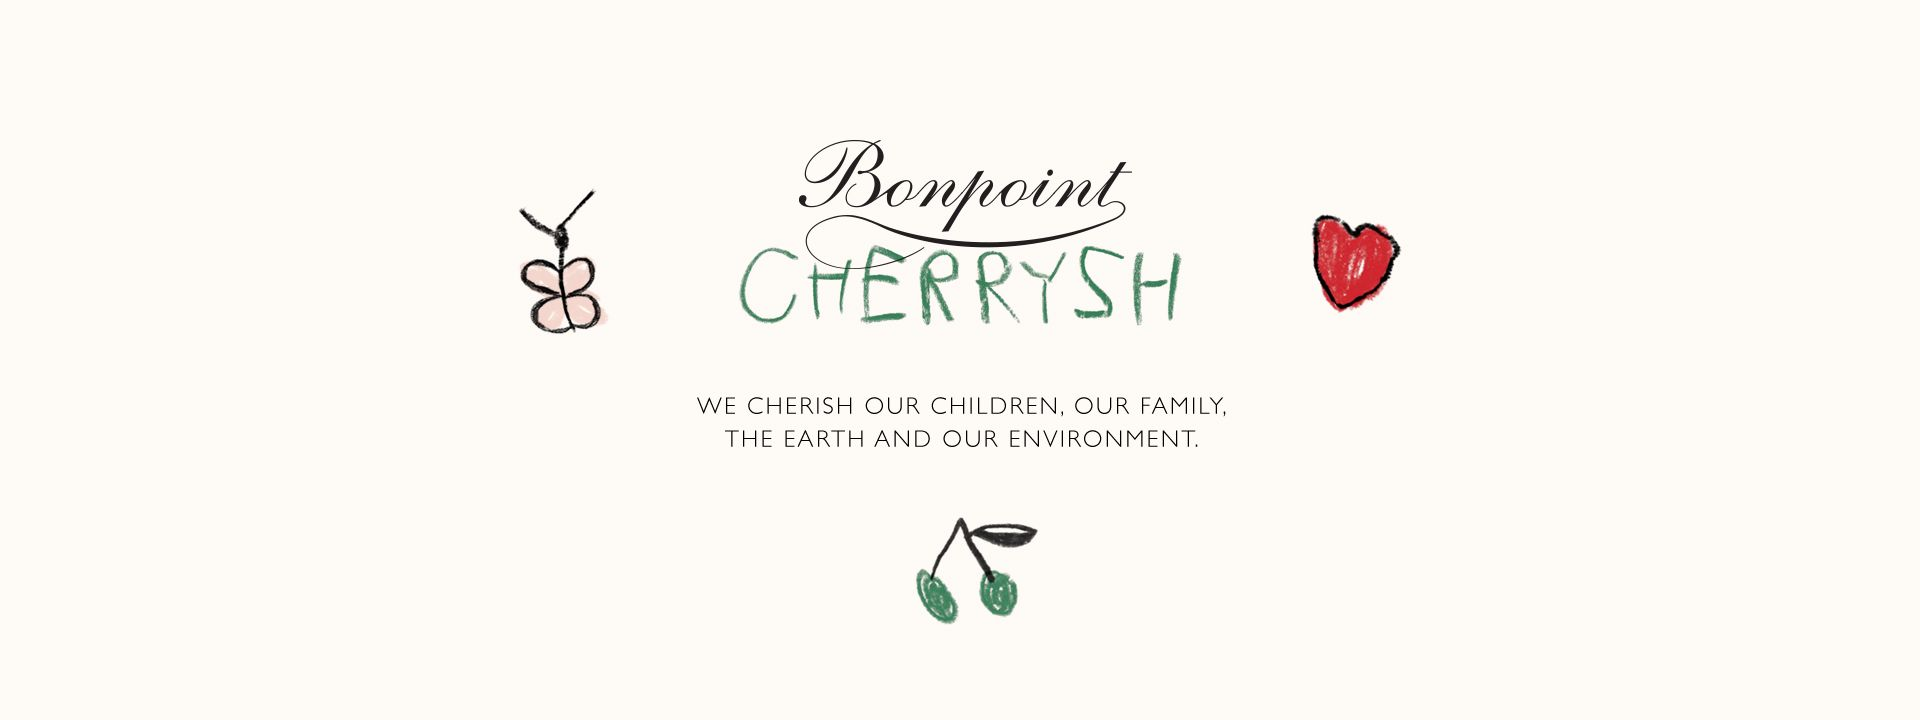 BONPOINT CHERRYSH - We cherish our children, our family, the Earth and our environment